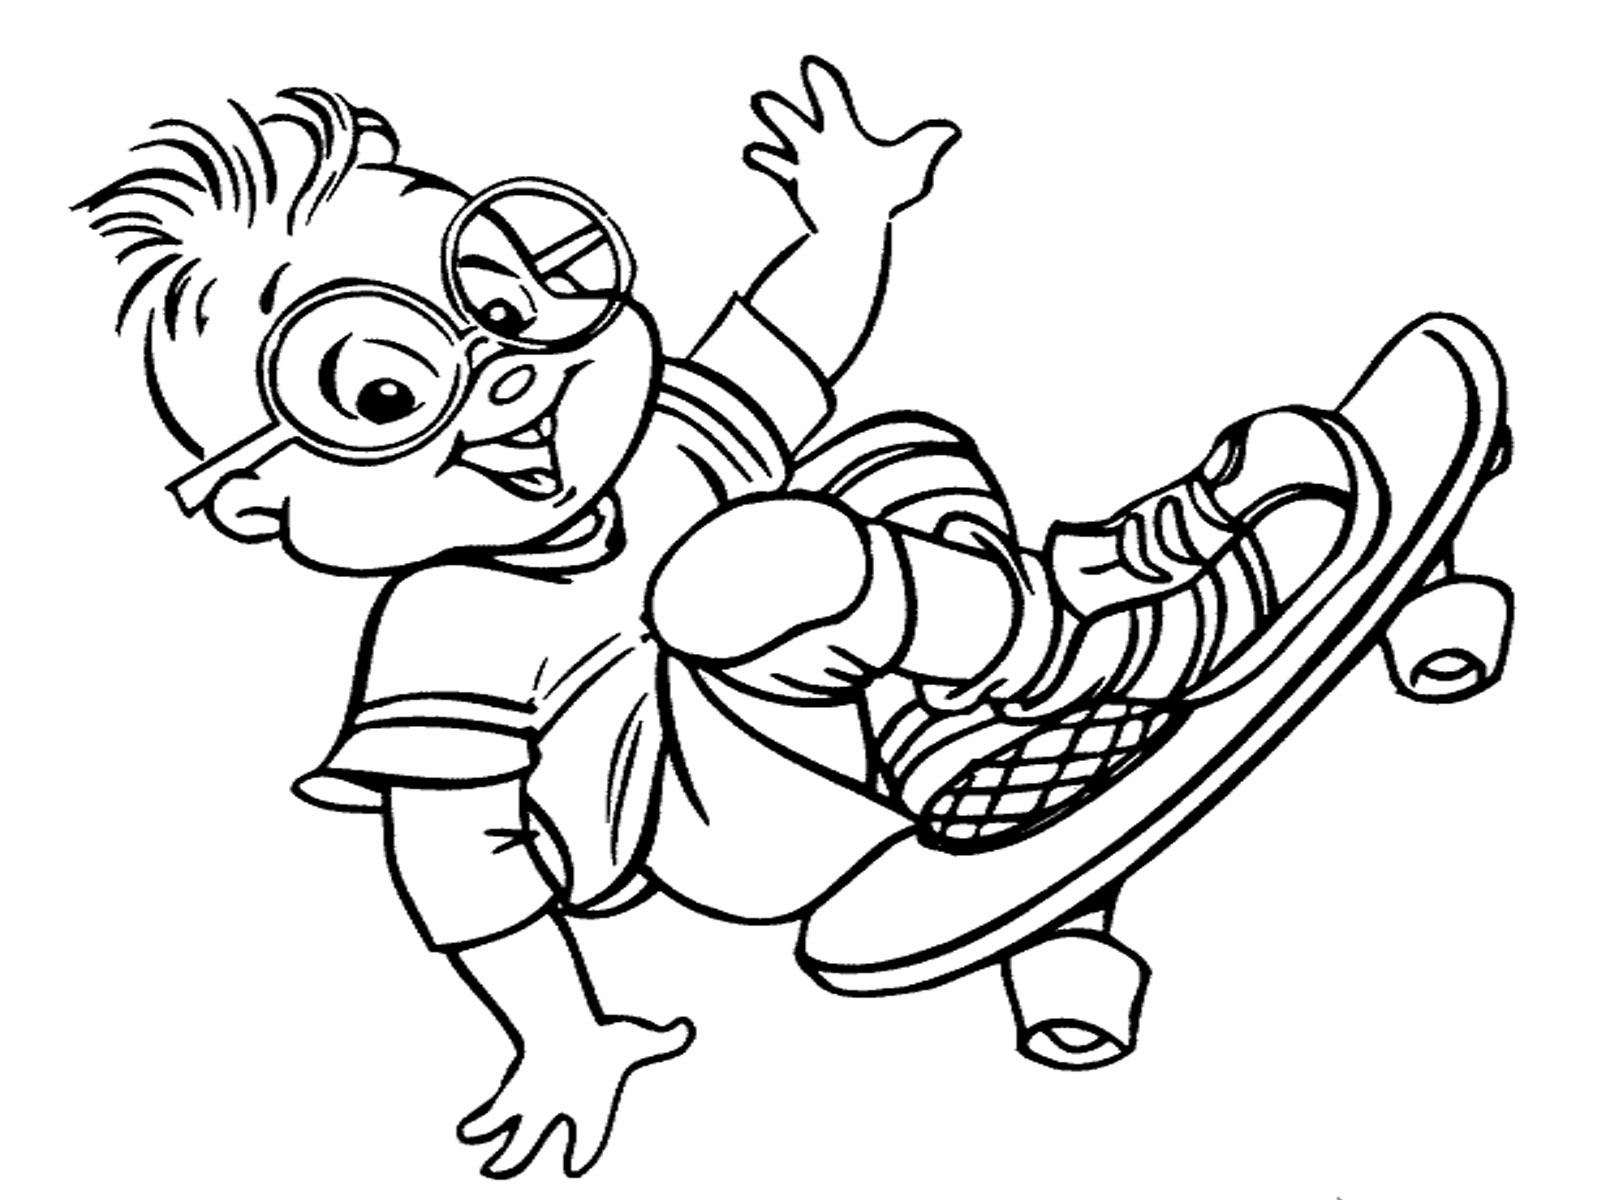 alvin and the chipmunks printable coloring pages photo - 1